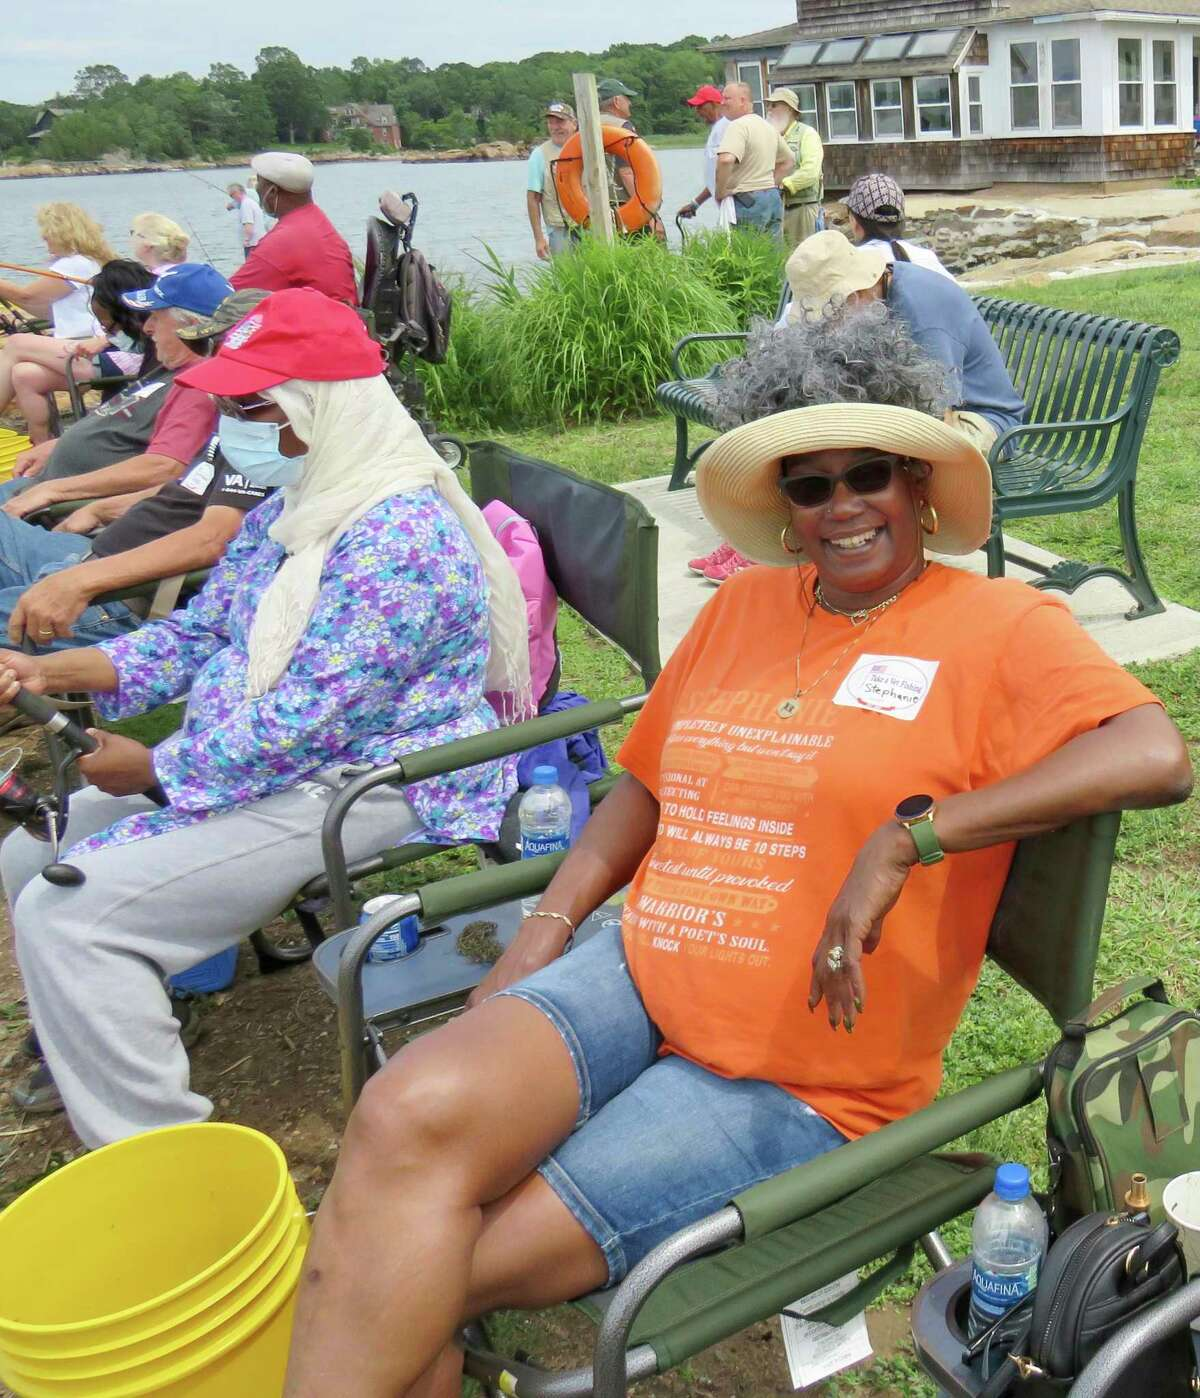 Army veteran Stephanie Covington at recent Take A Vet Fishing event at Killam's Point in Branford